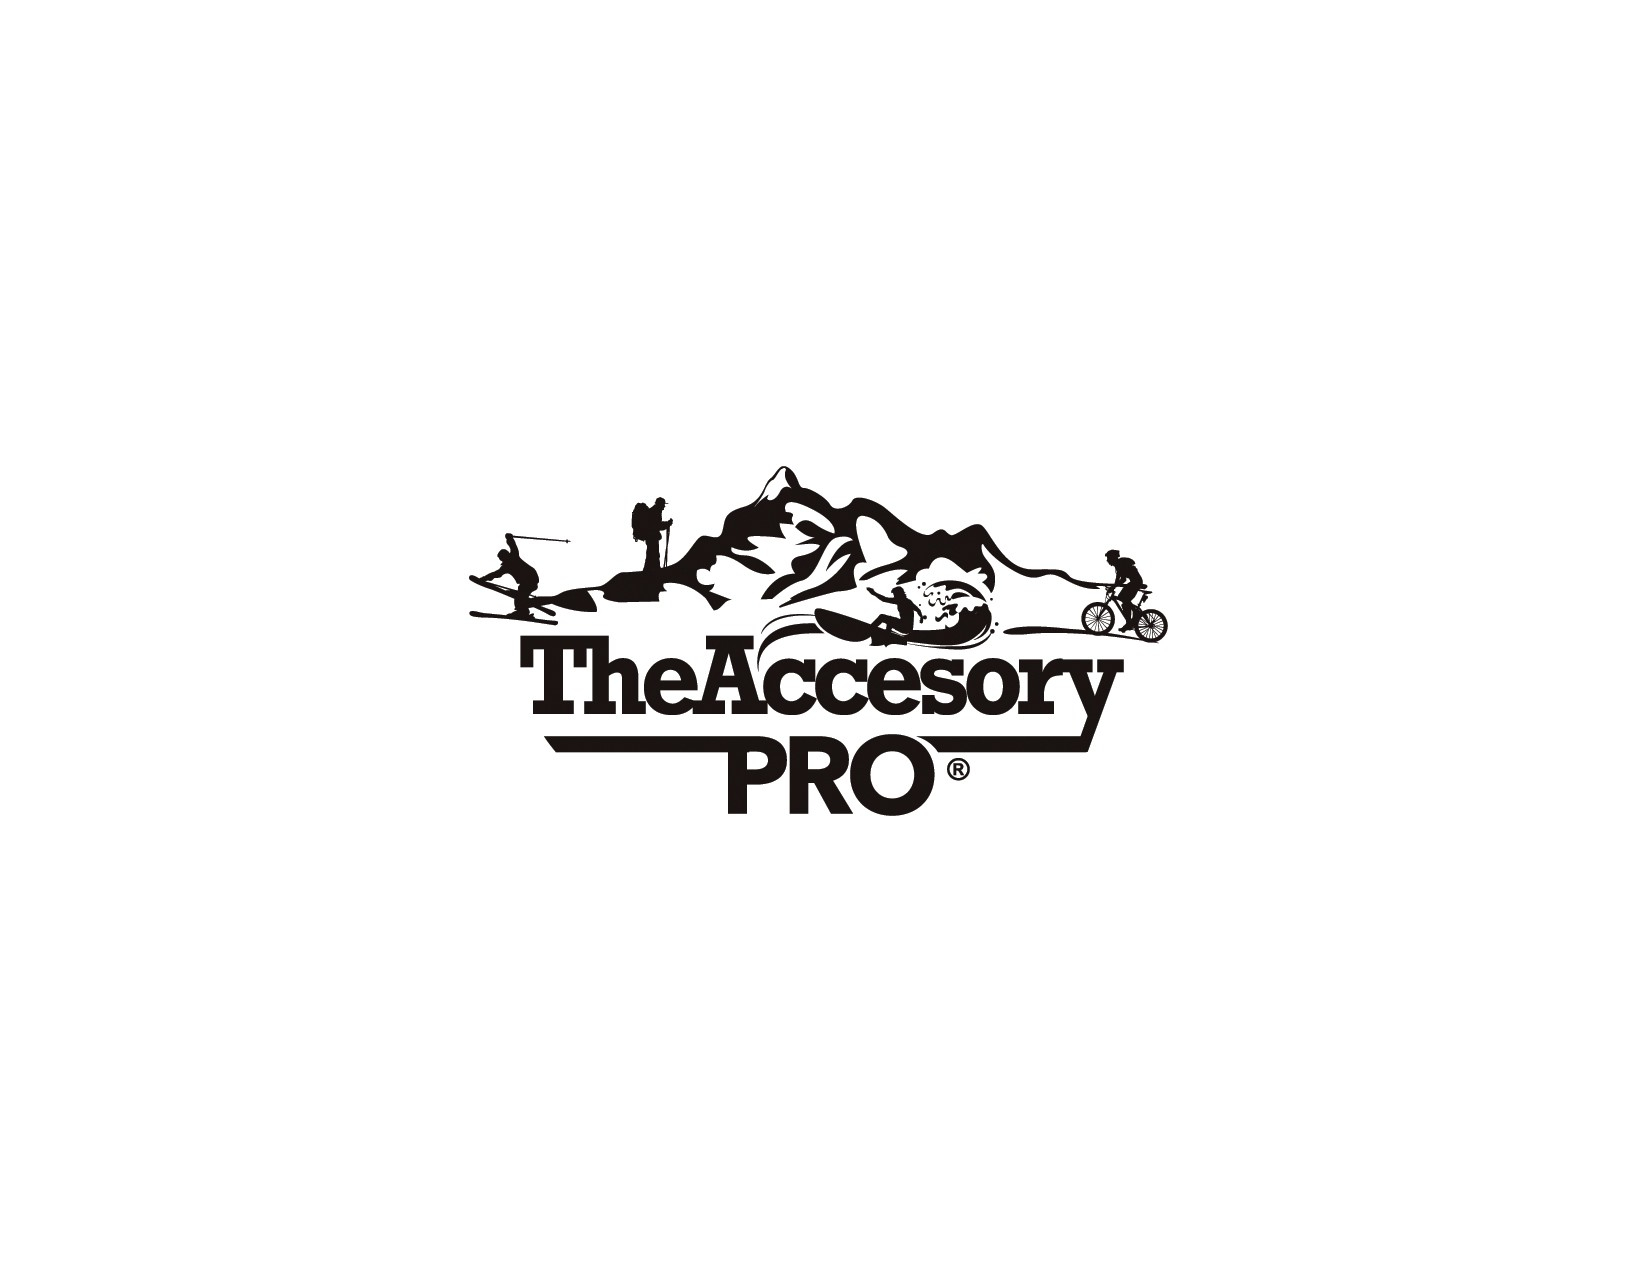 Create an action sports logo for GoPro accessory company